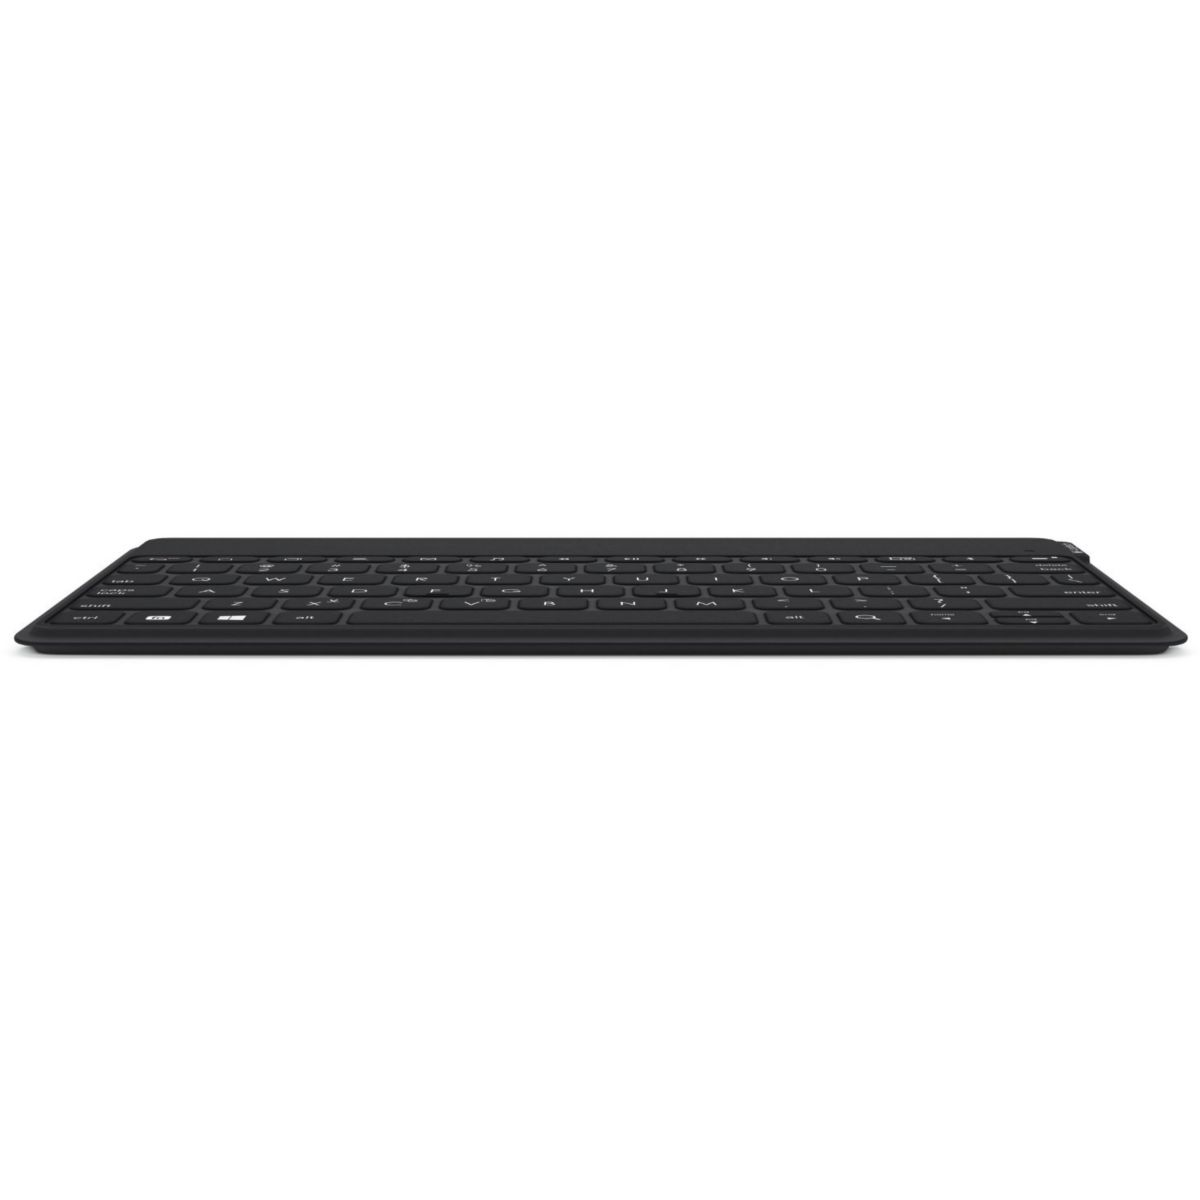 Clavier logitech keys to go ultra black - soldes et bons plans